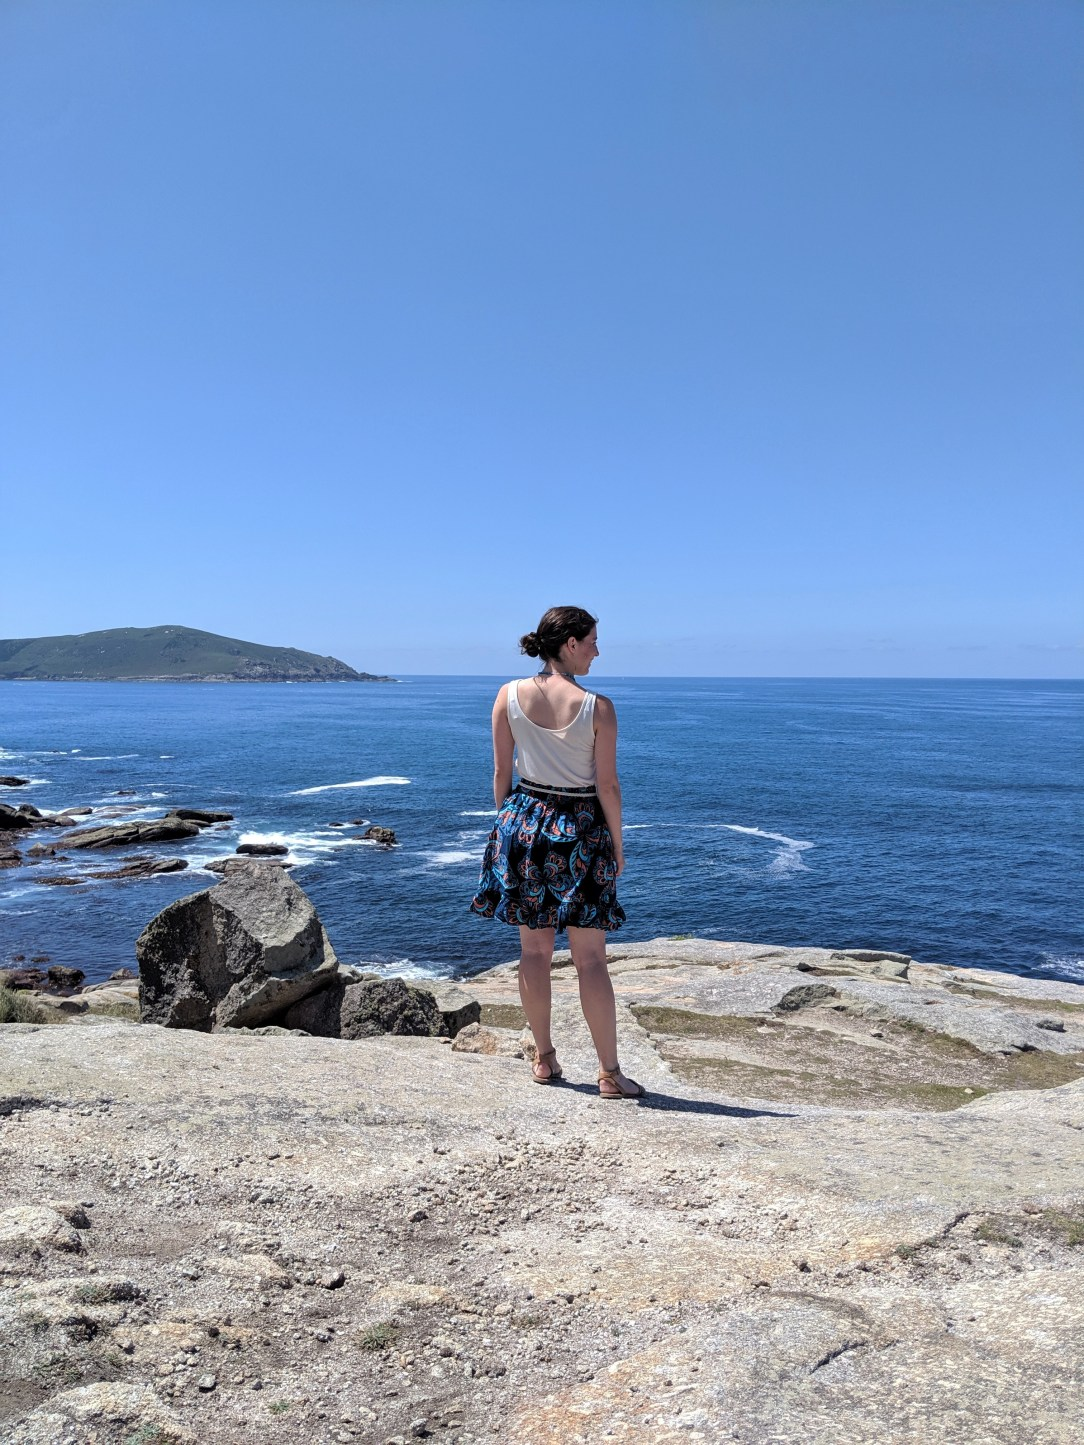 Muxia, Atlantic Ocean, patterned skirt, JCPenney, summer outfit